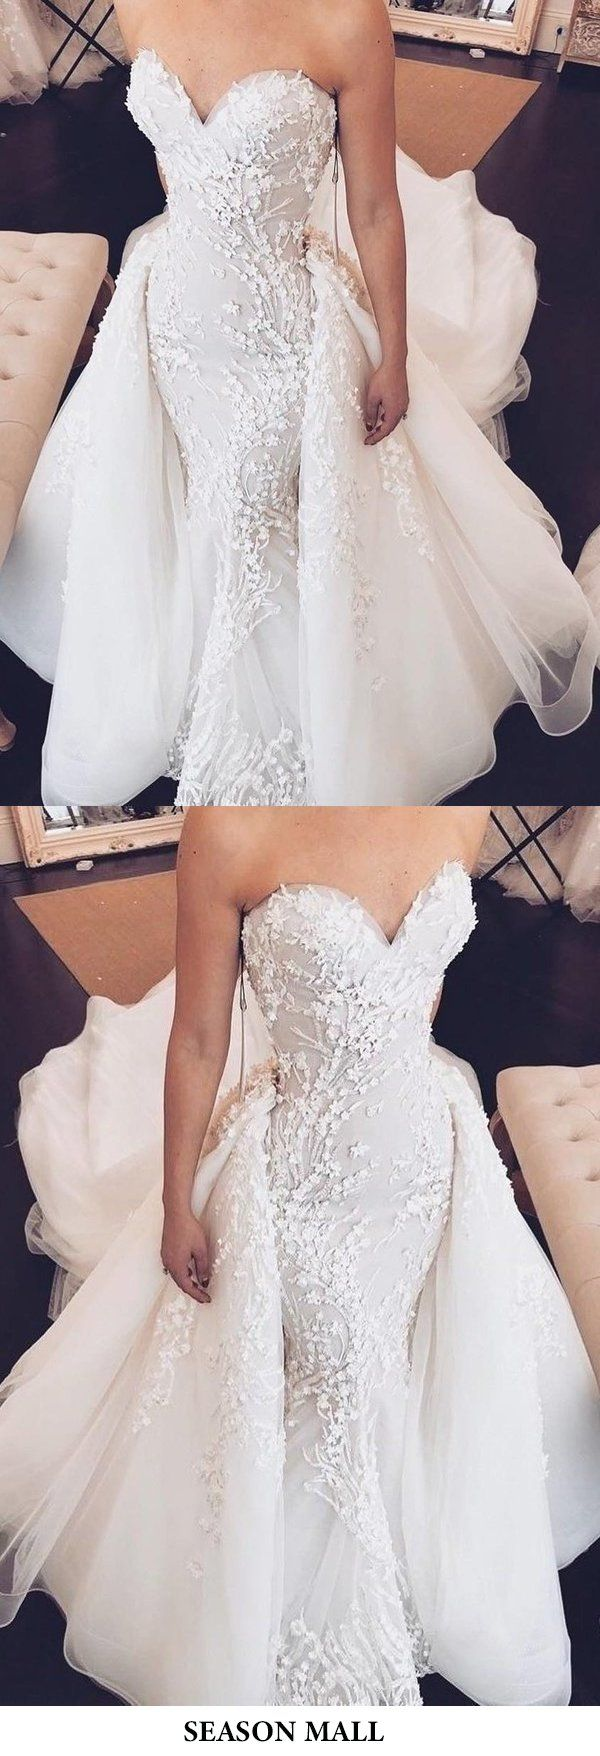 Sweetheart Mermaid Strapless Lace Appliques Wedding Dress